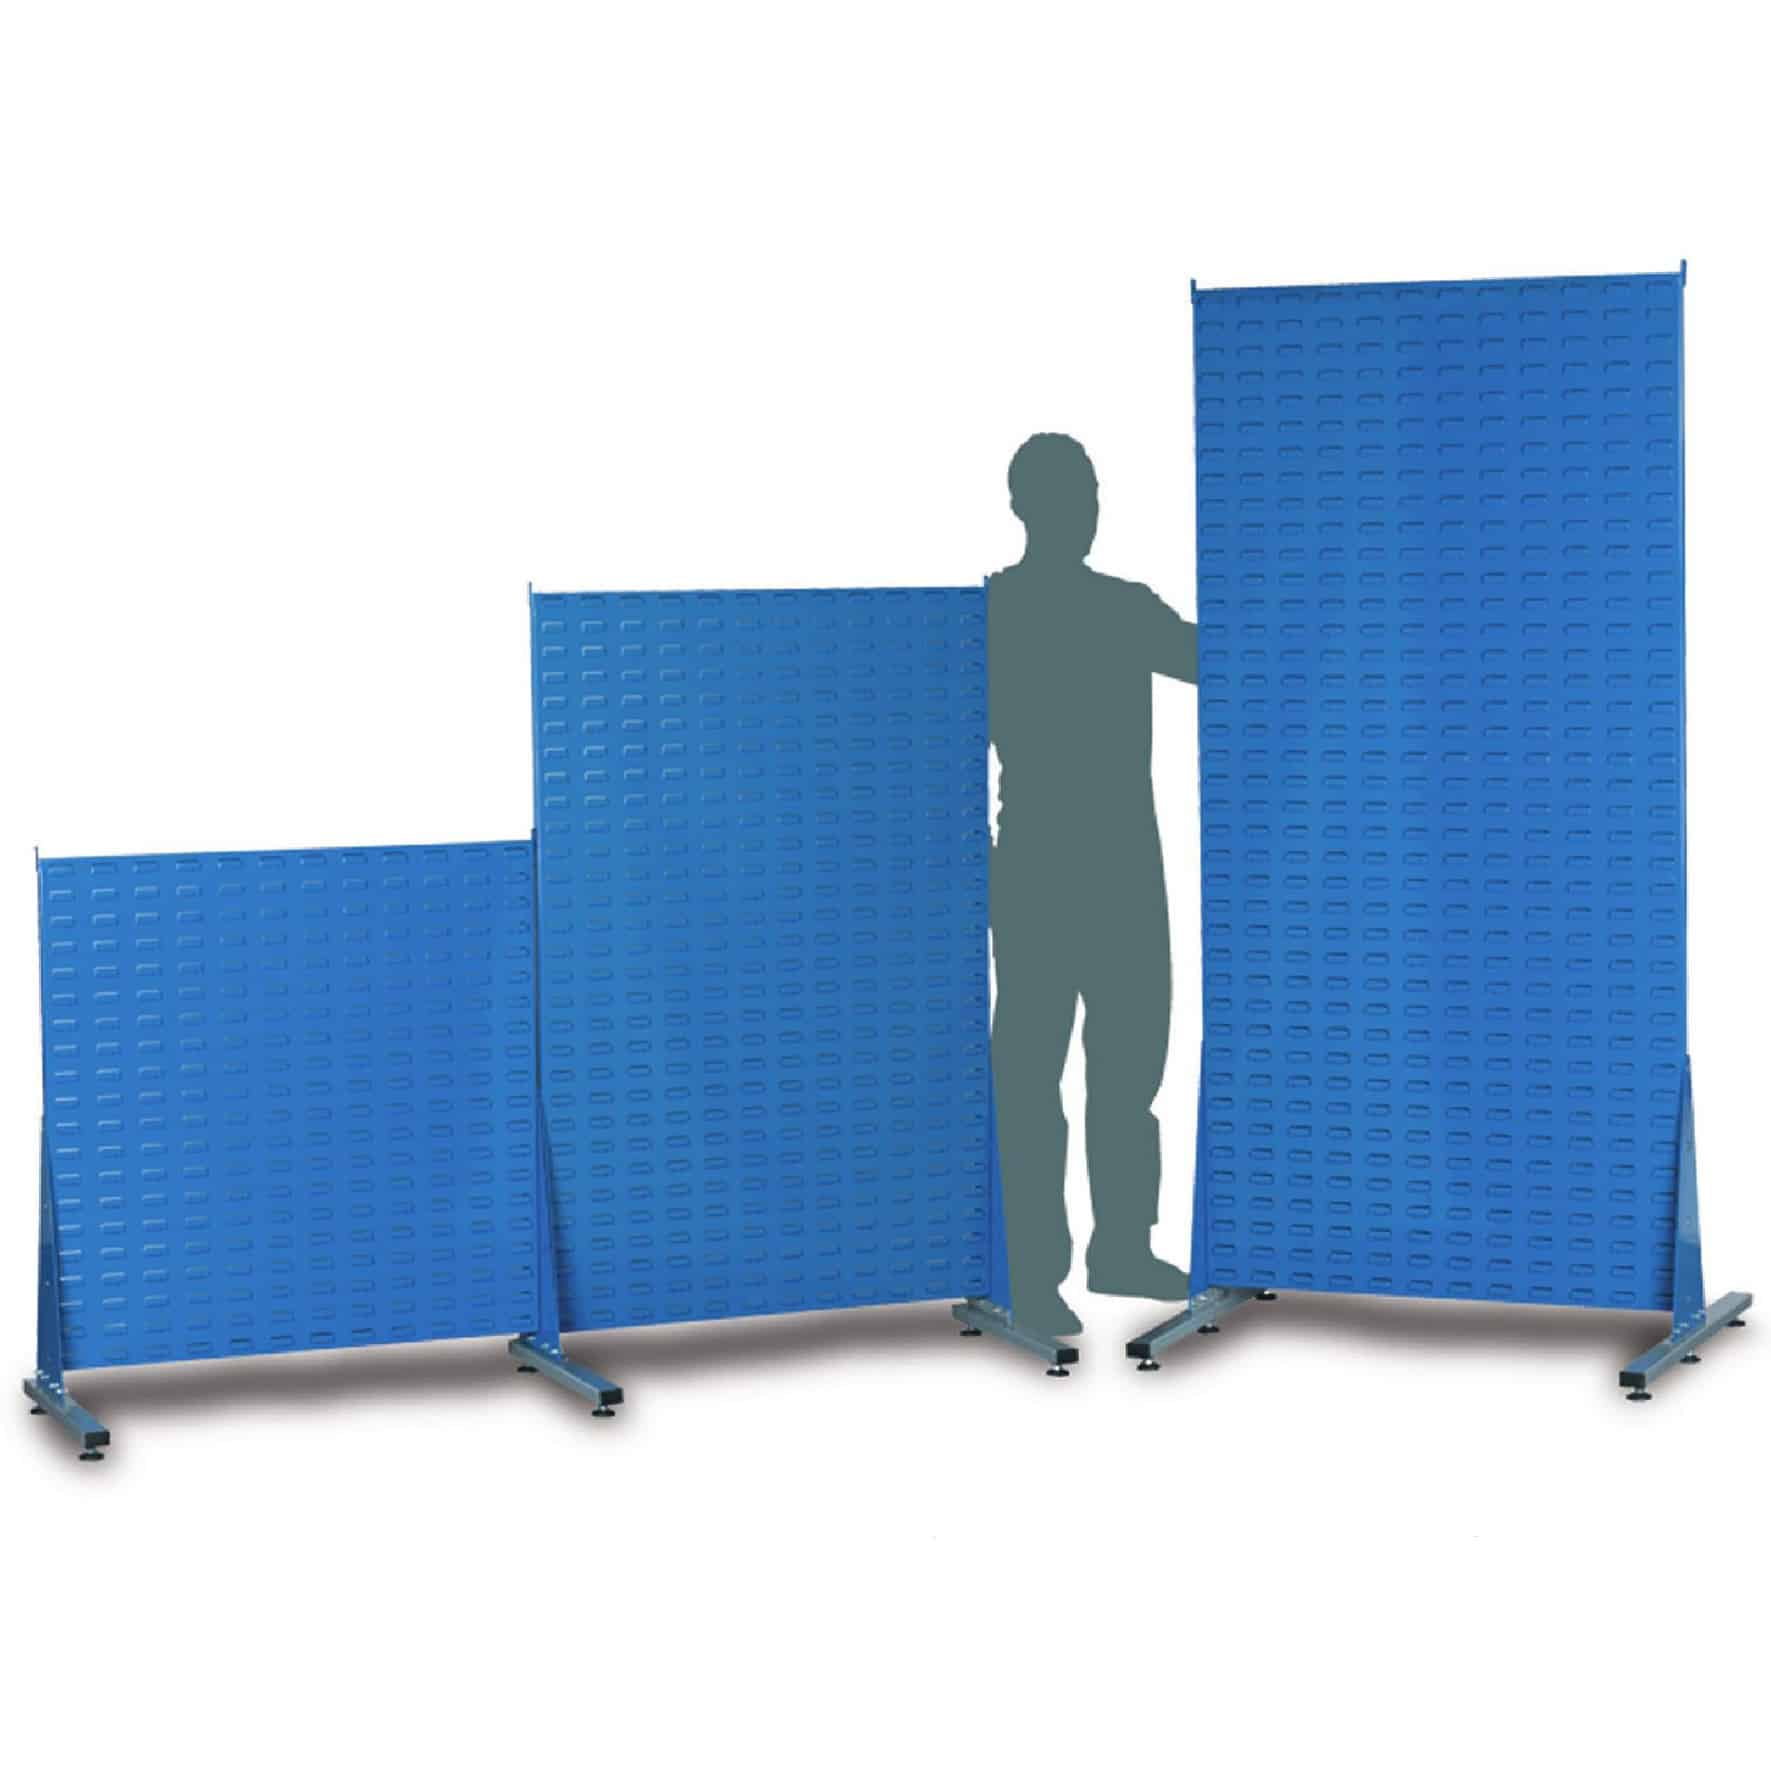 Topstore Louvred Panel Spacemaster Stands